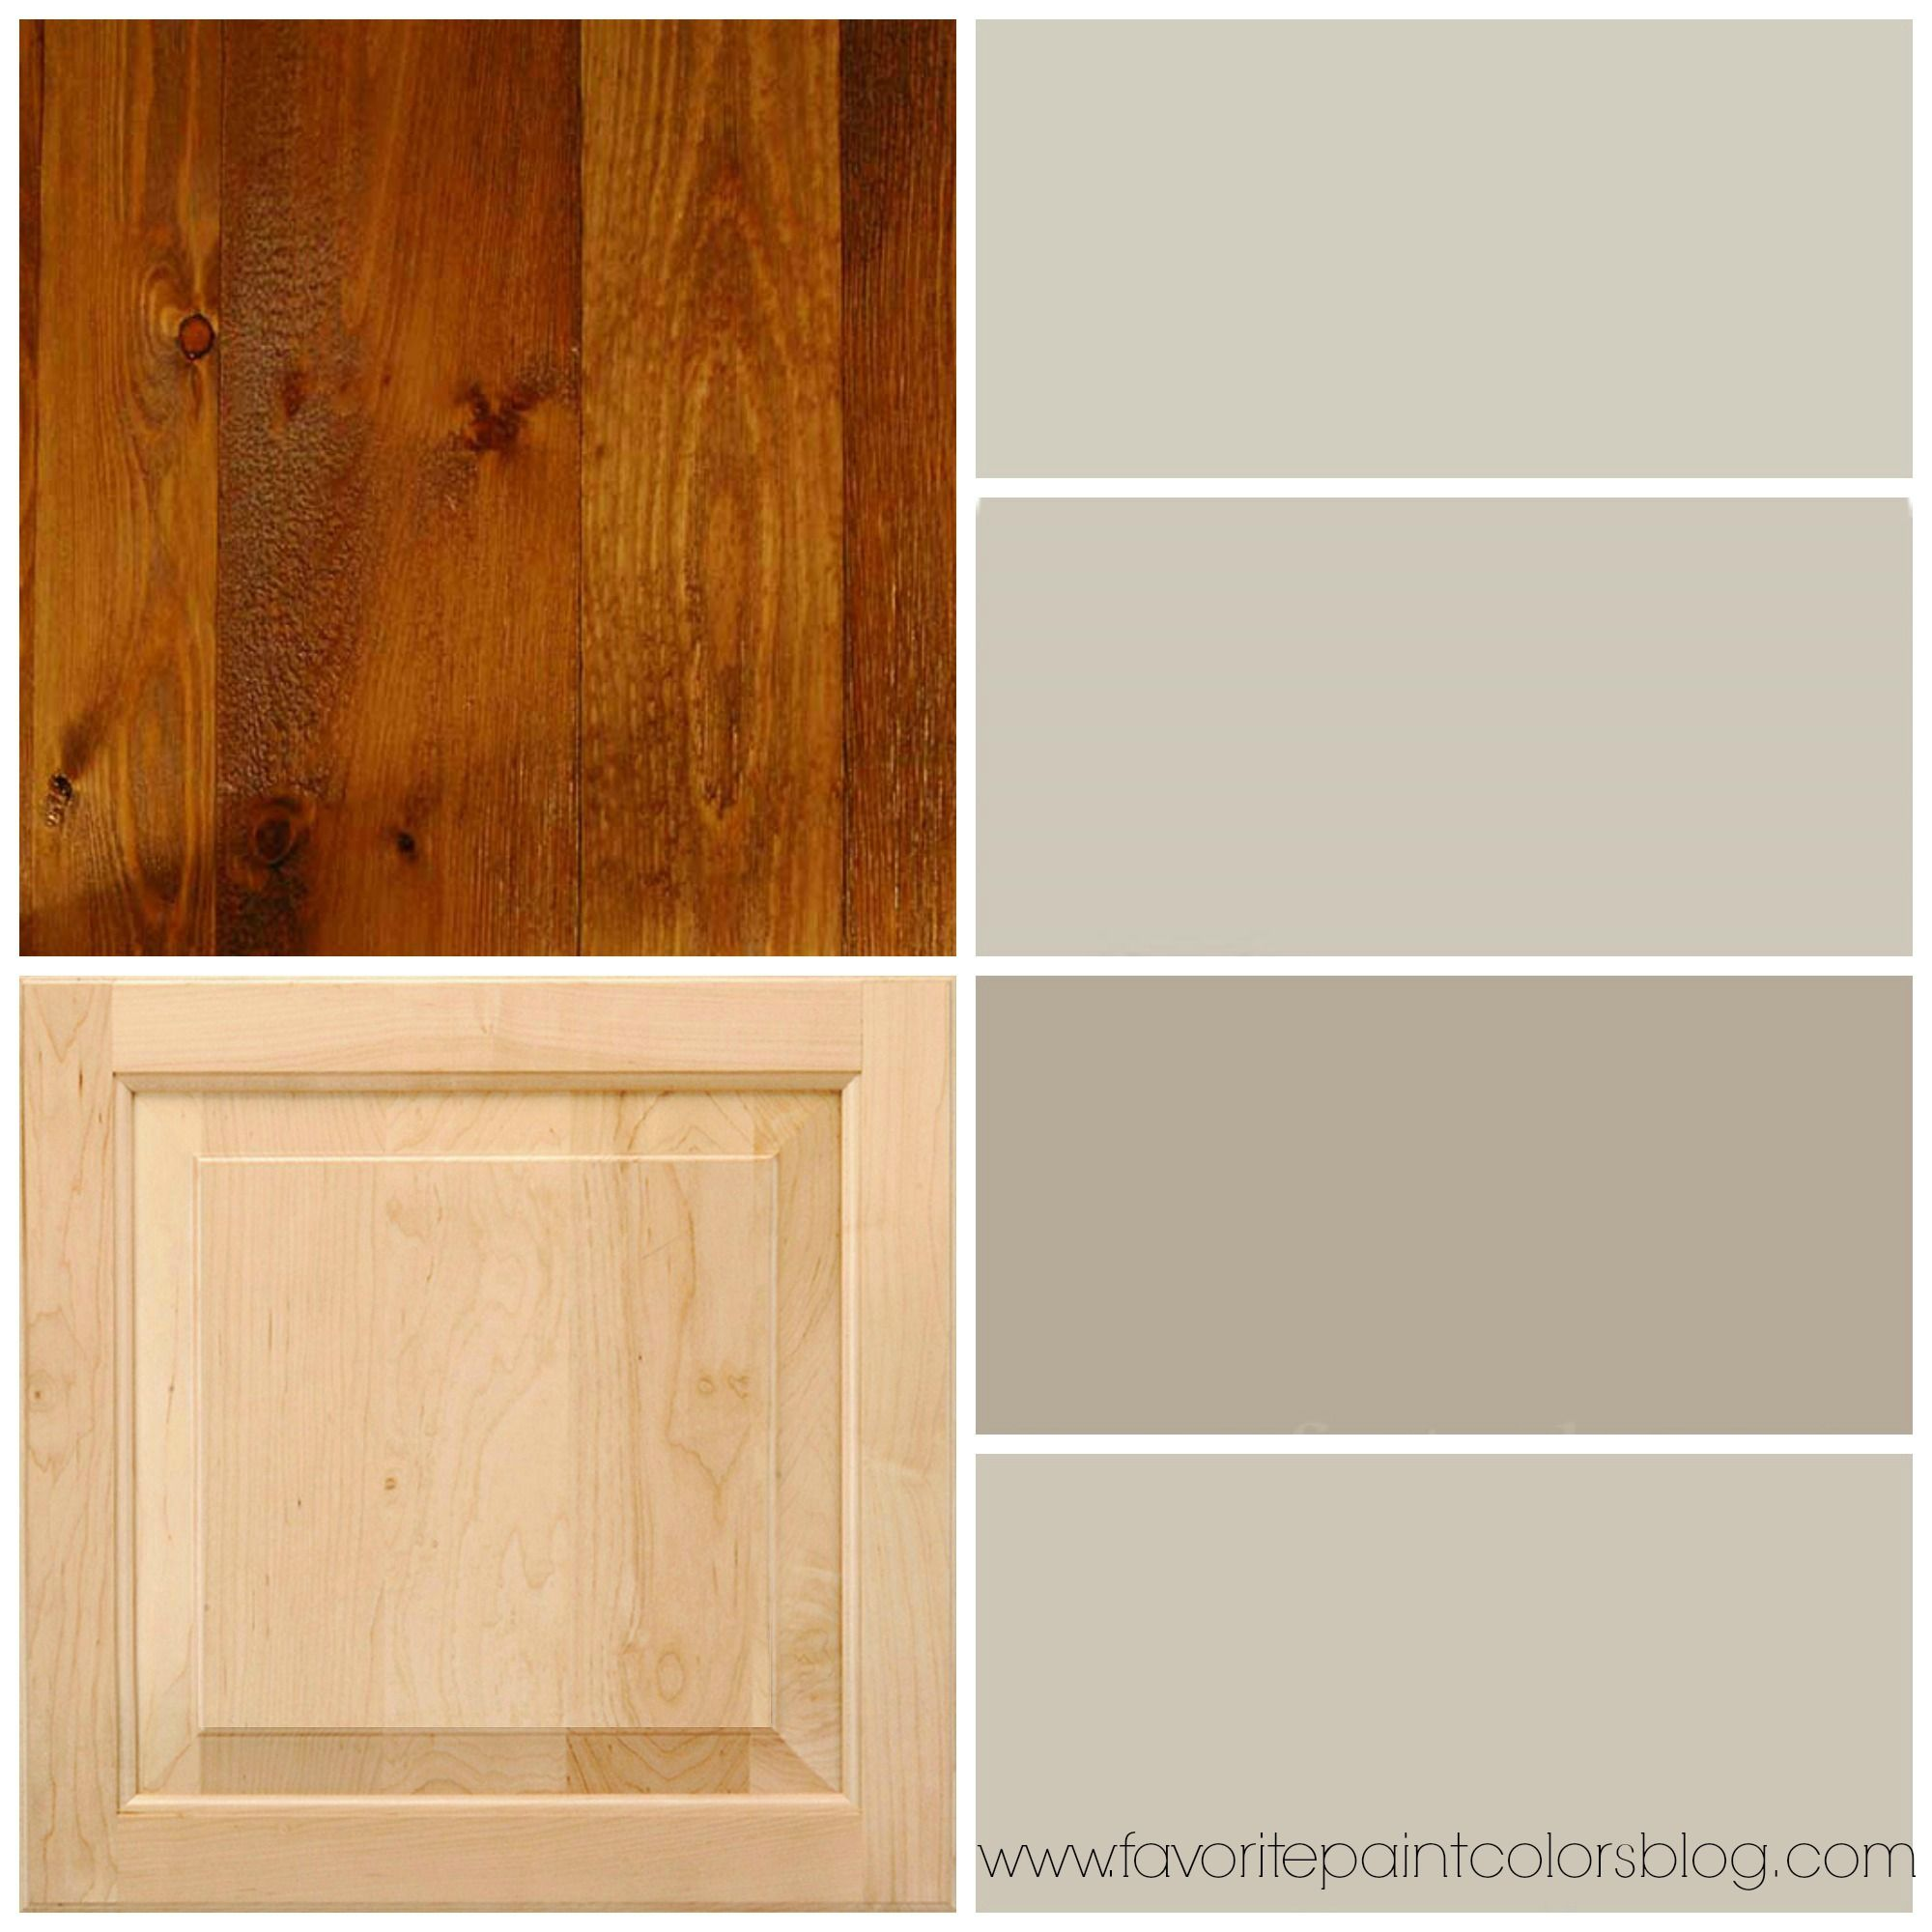 Trim For Cabinets Greige Paint Colors To Go With Wood Trim And Cabinets From Top To